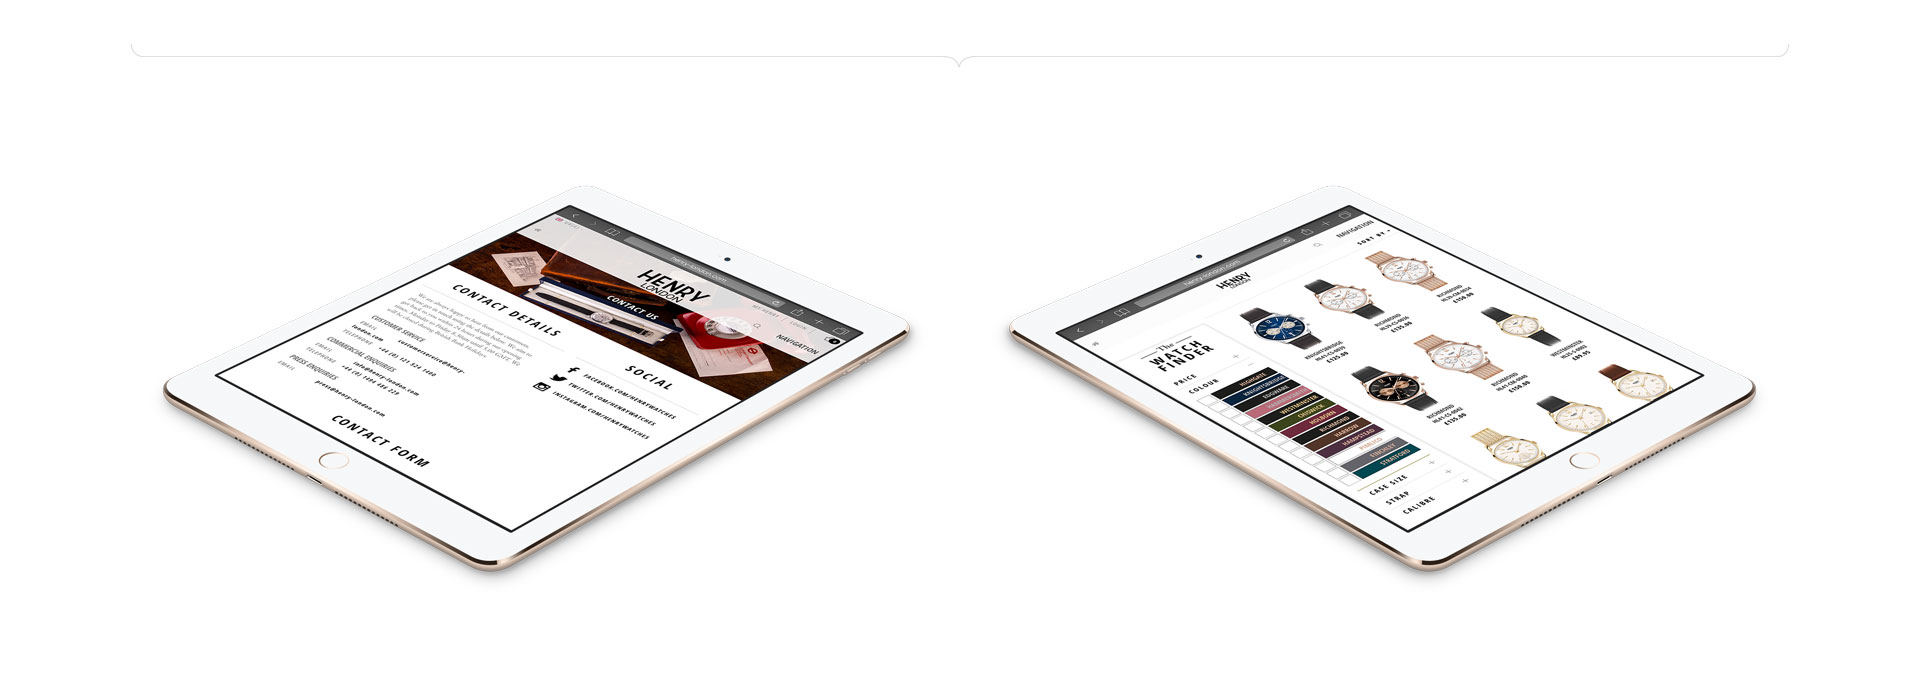 ecommerce website design iPad